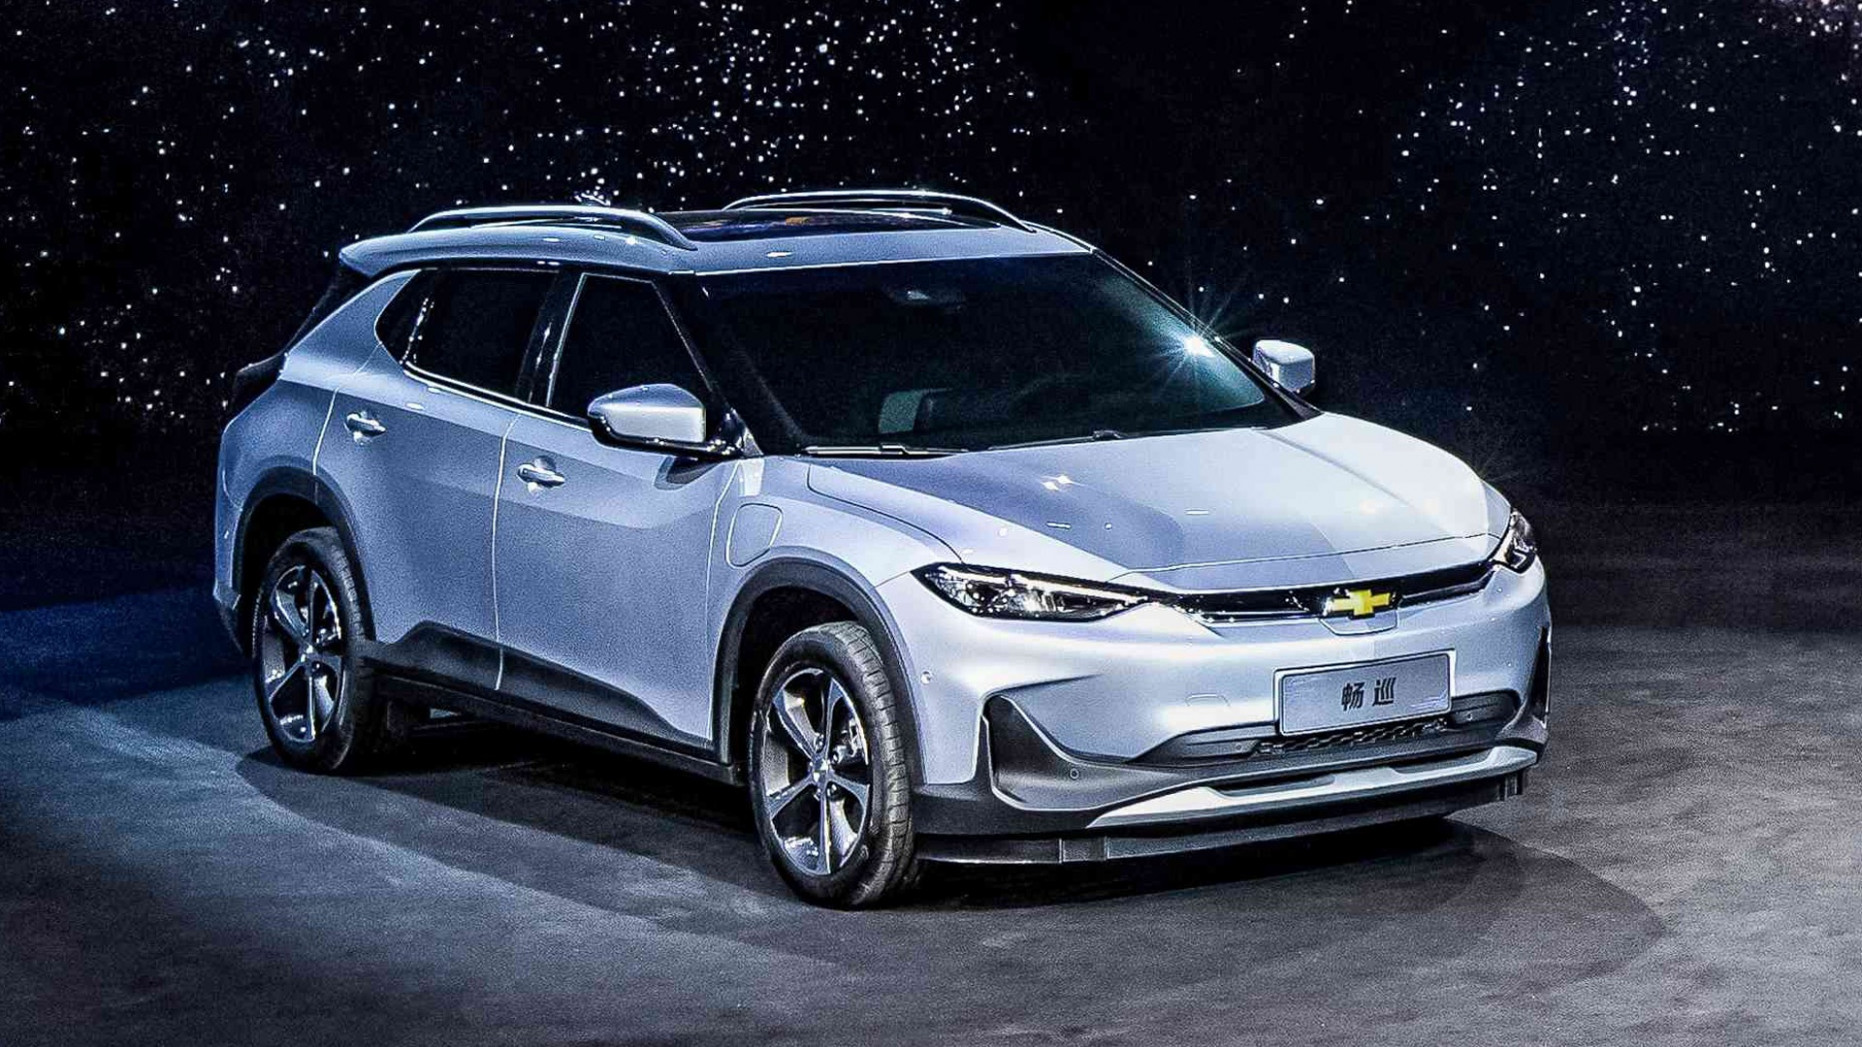 Chevy reveals 8-seat Blazer and new EV in China - chevrolet vehicles 2020